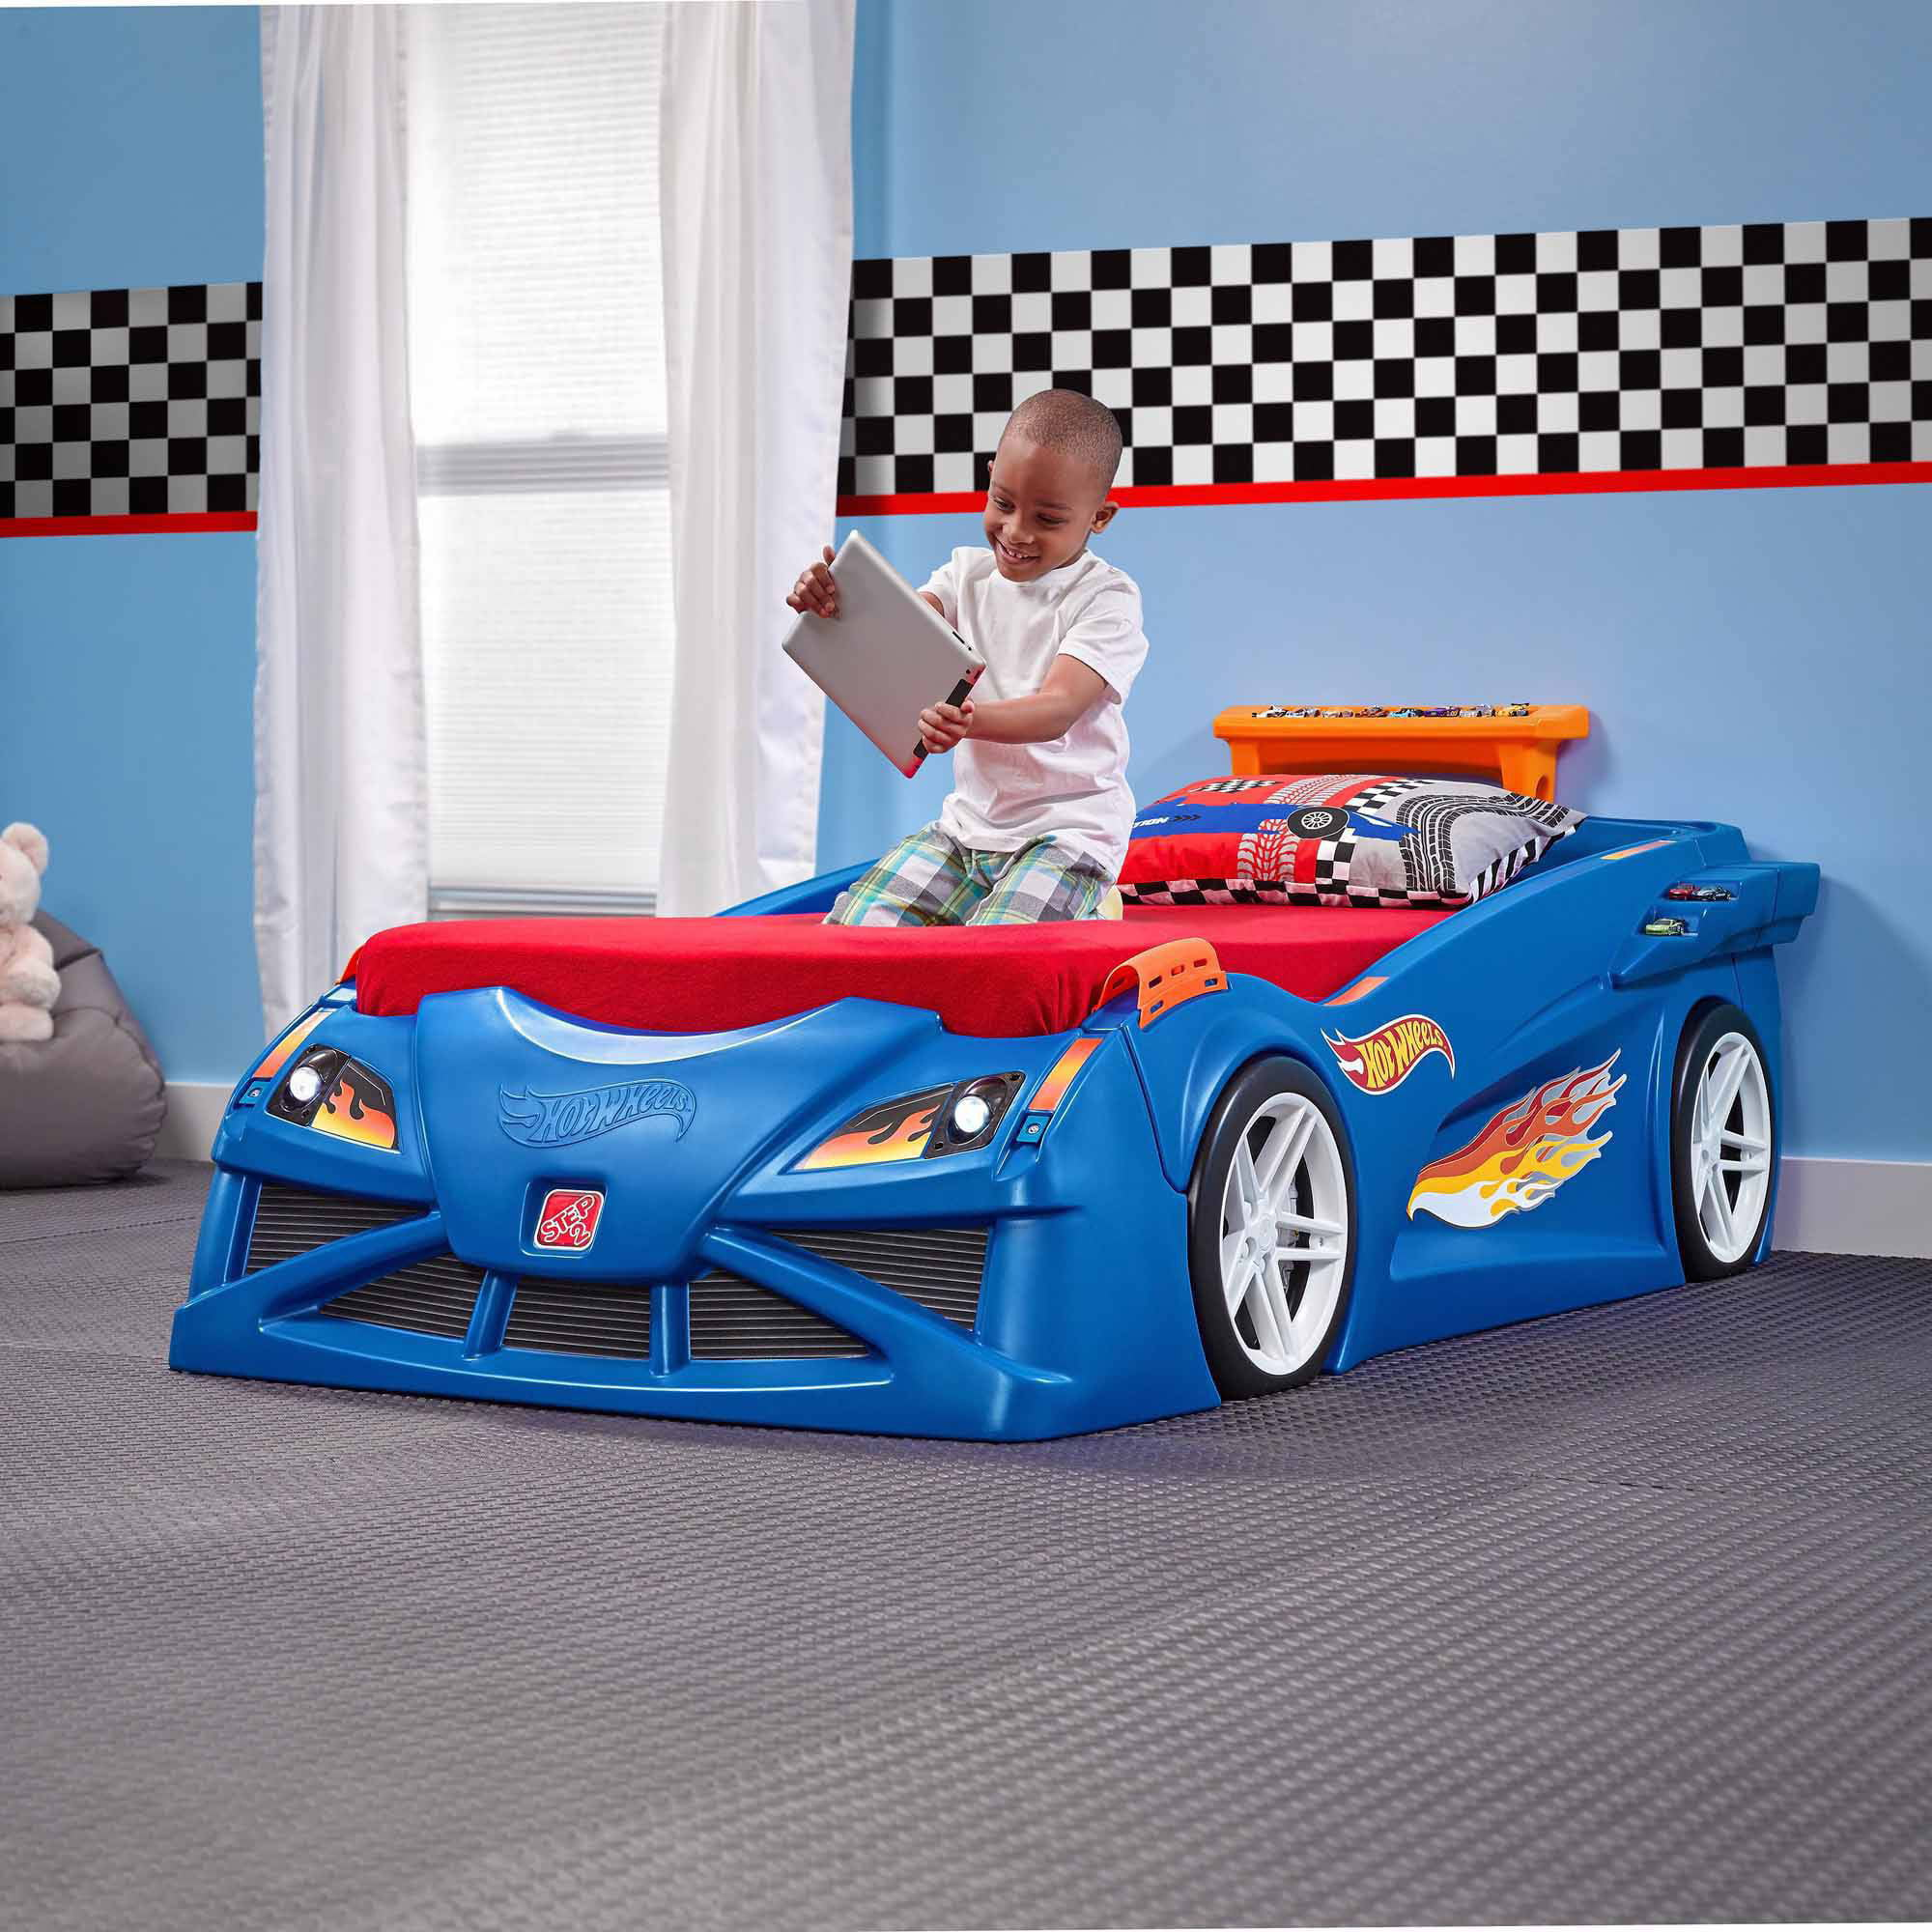 Blue car beds for kids - Blue Car Beds For Kids 6